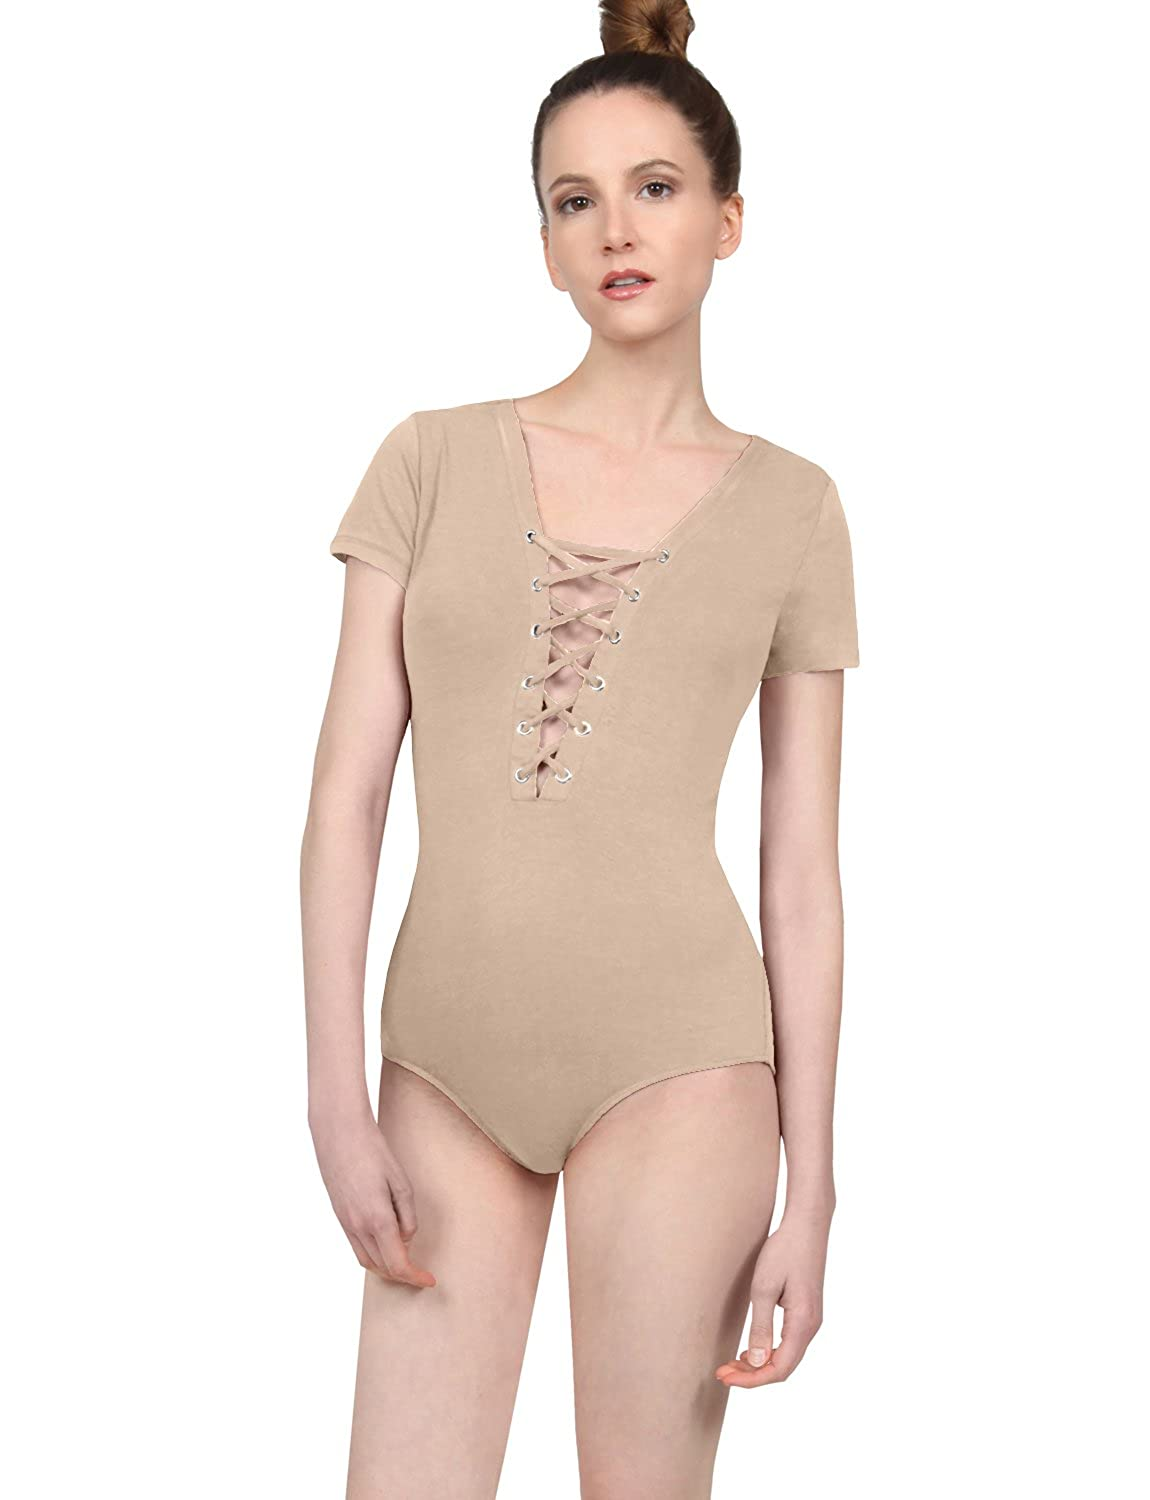 67fff5a7 NE PEOPLE Womens Sexy Fitted Stretchy Short Sleeve Lace up Strap Snap  Button Bodysuit at Amazon Women's Clothing store: